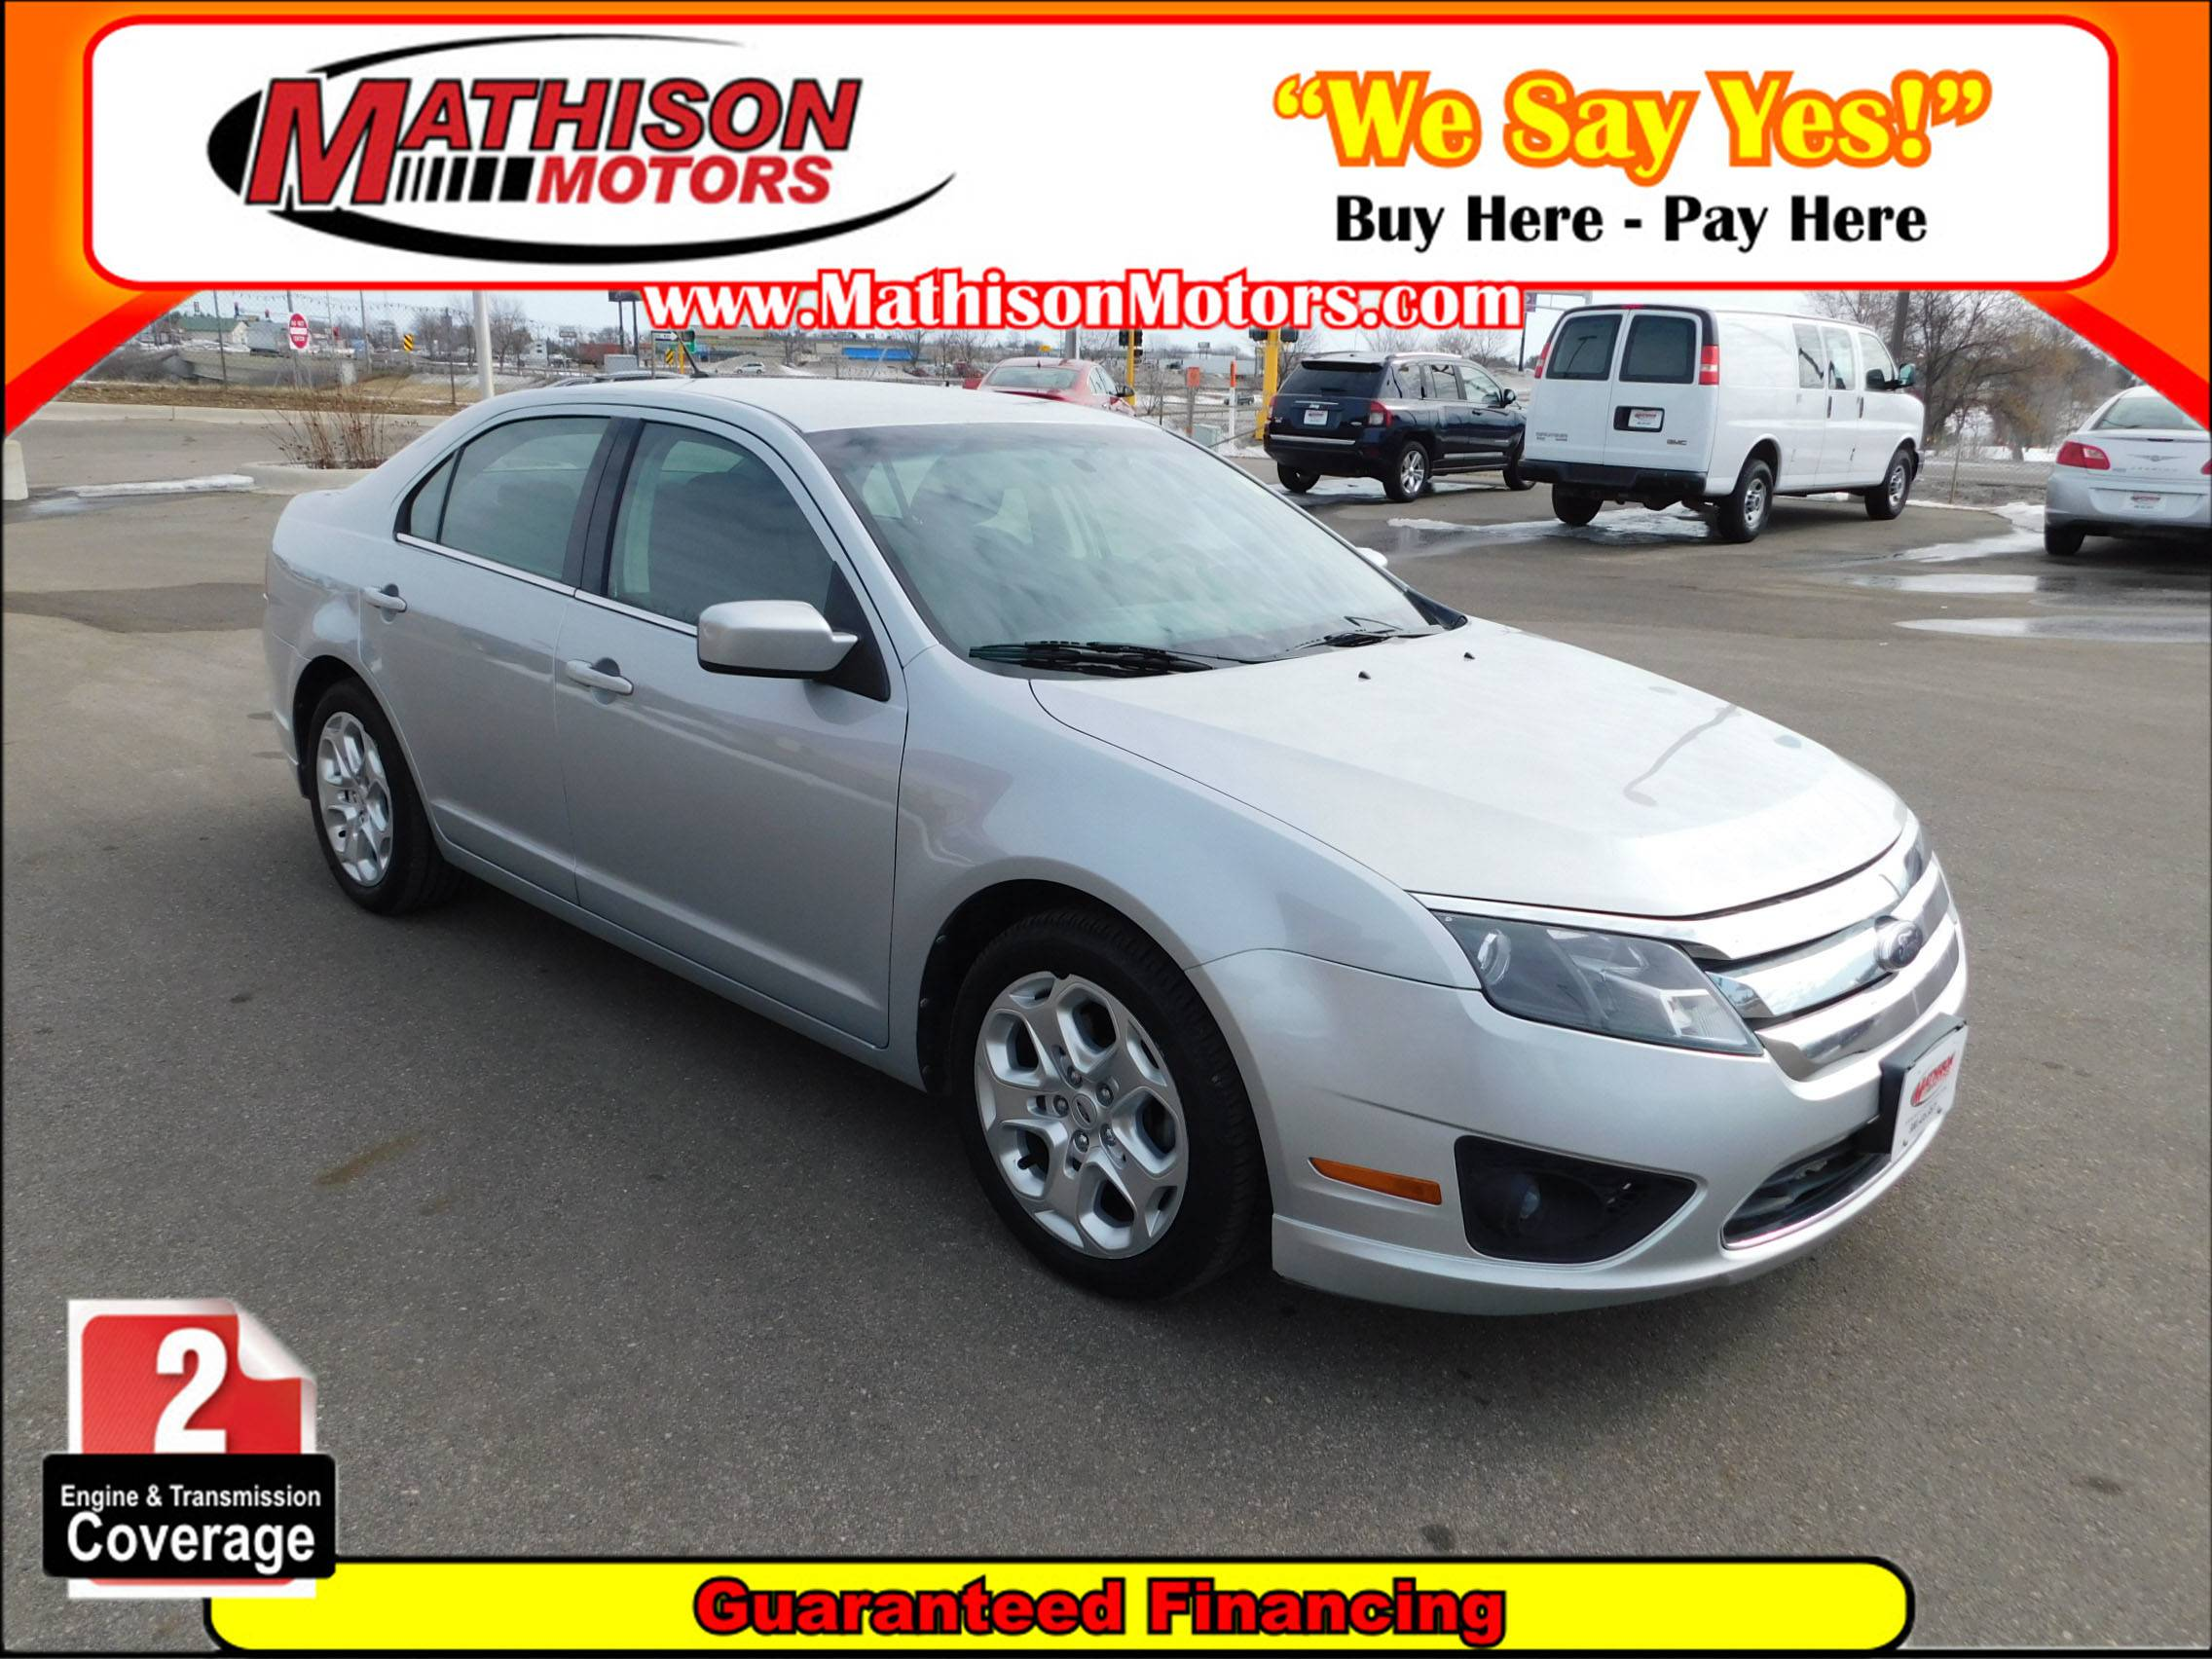 Used 2010 Ford Fusion Se For In Mathison 20662 Jp Motors Inc Dba